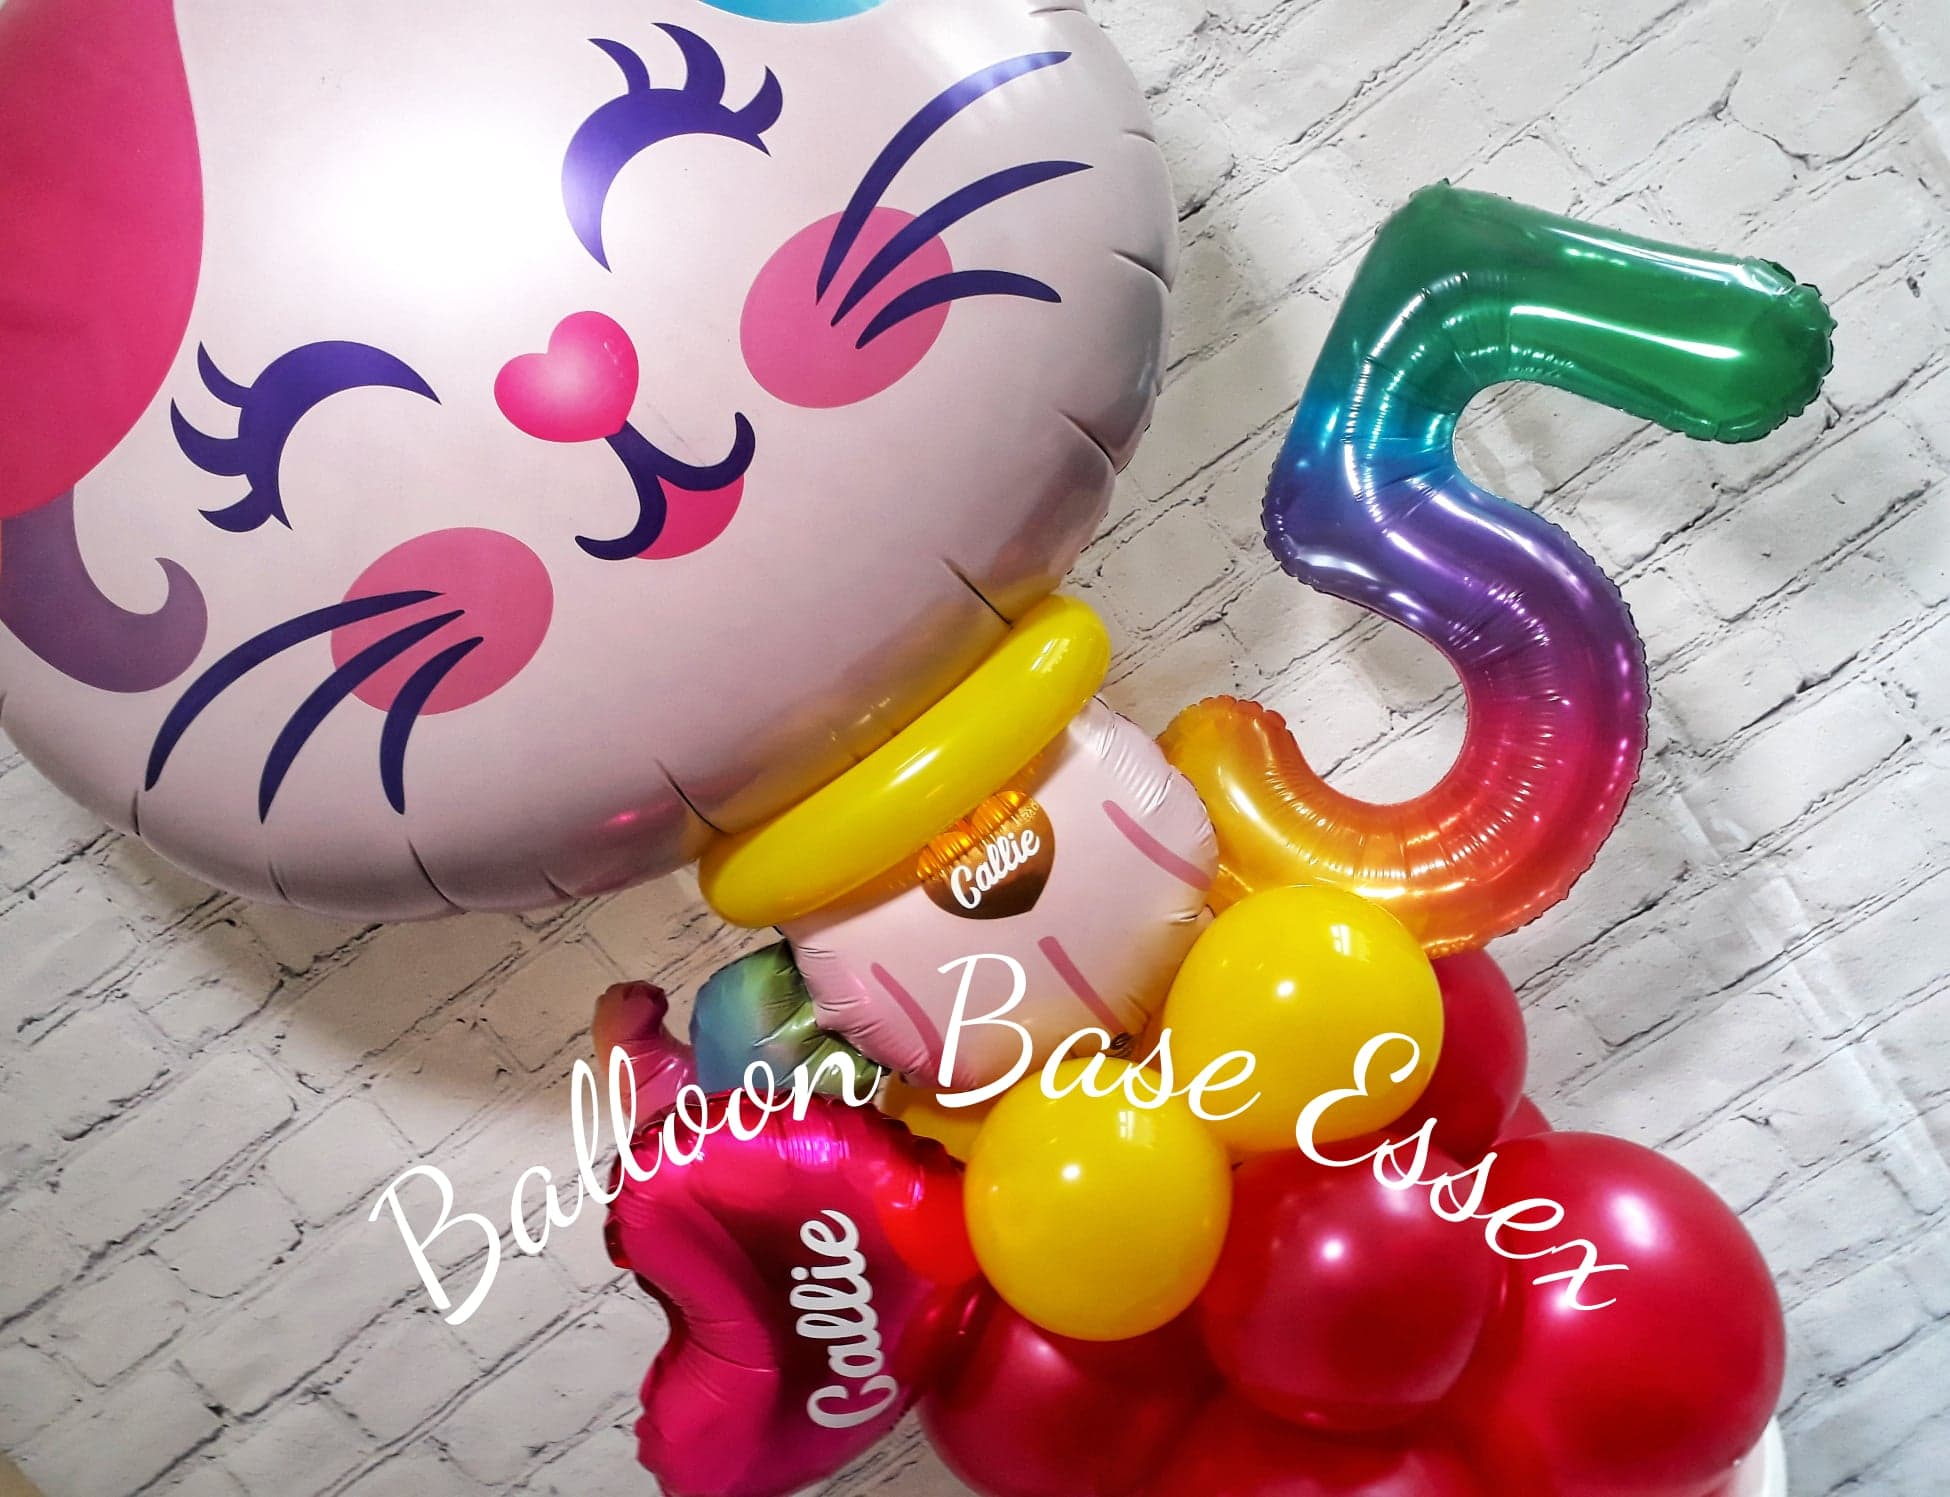 Pink cat 5th birthday balloons